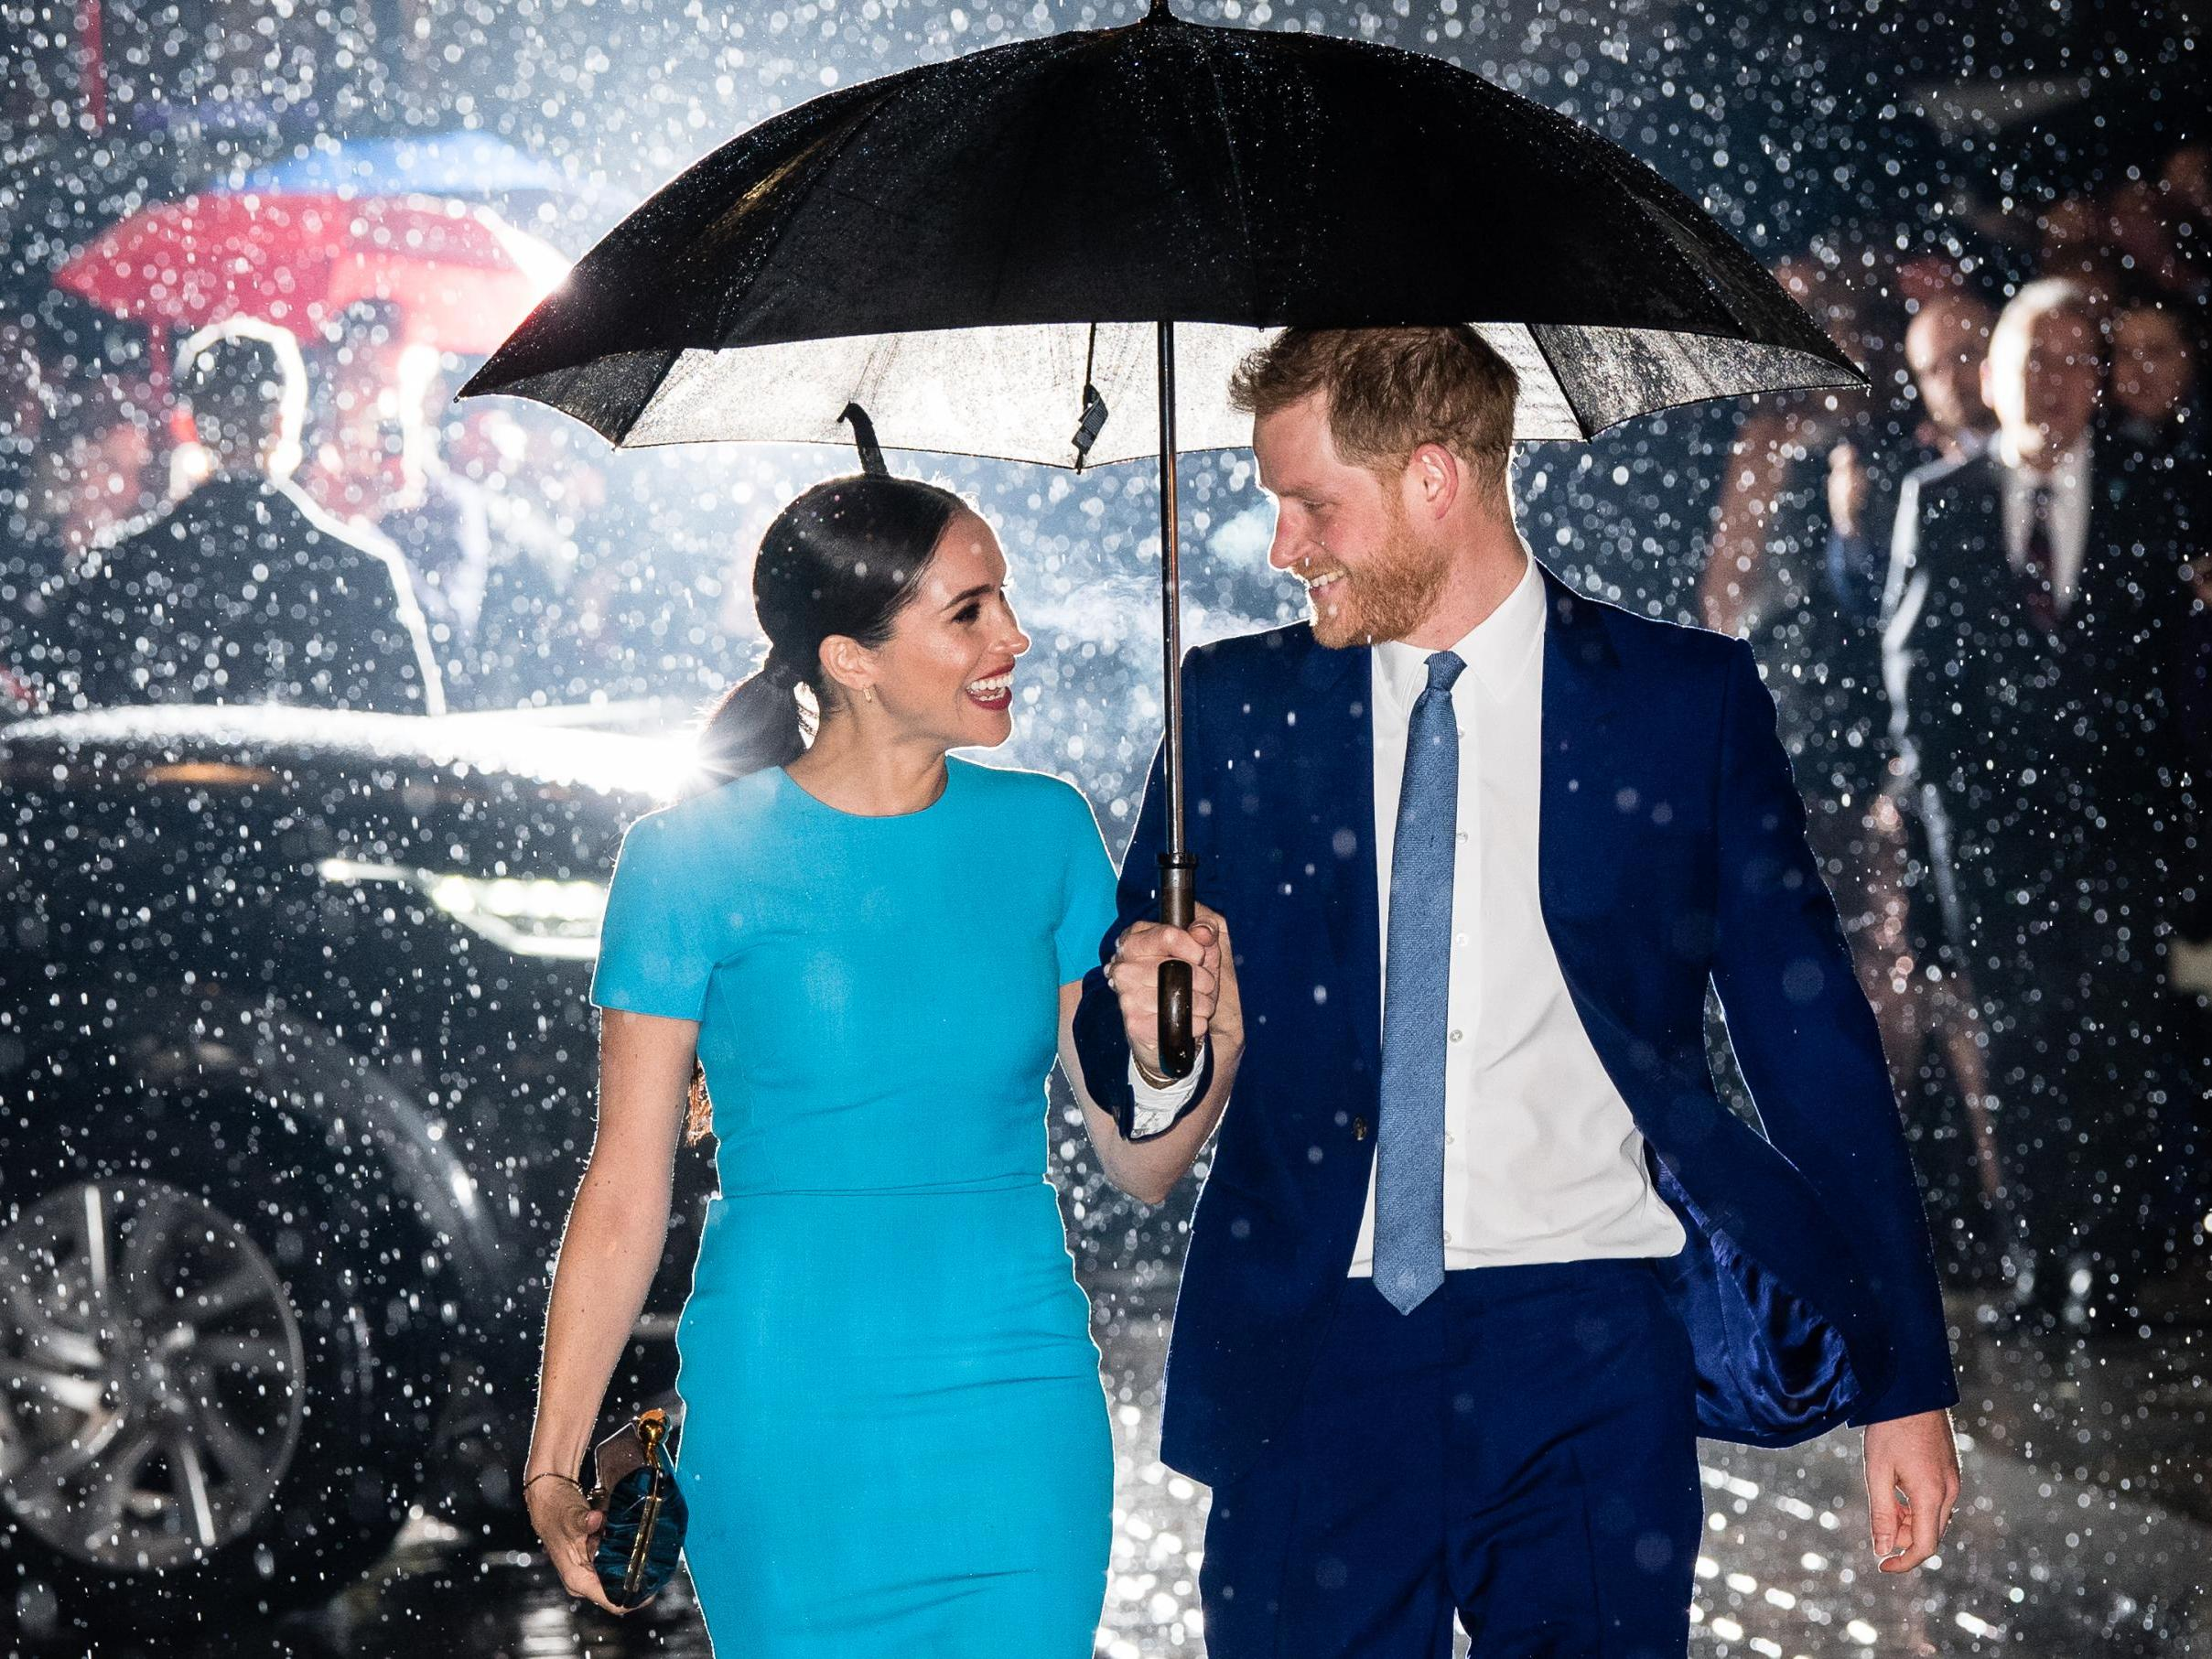 Prince Harry and Meghan Markle's best moments as a royal couple